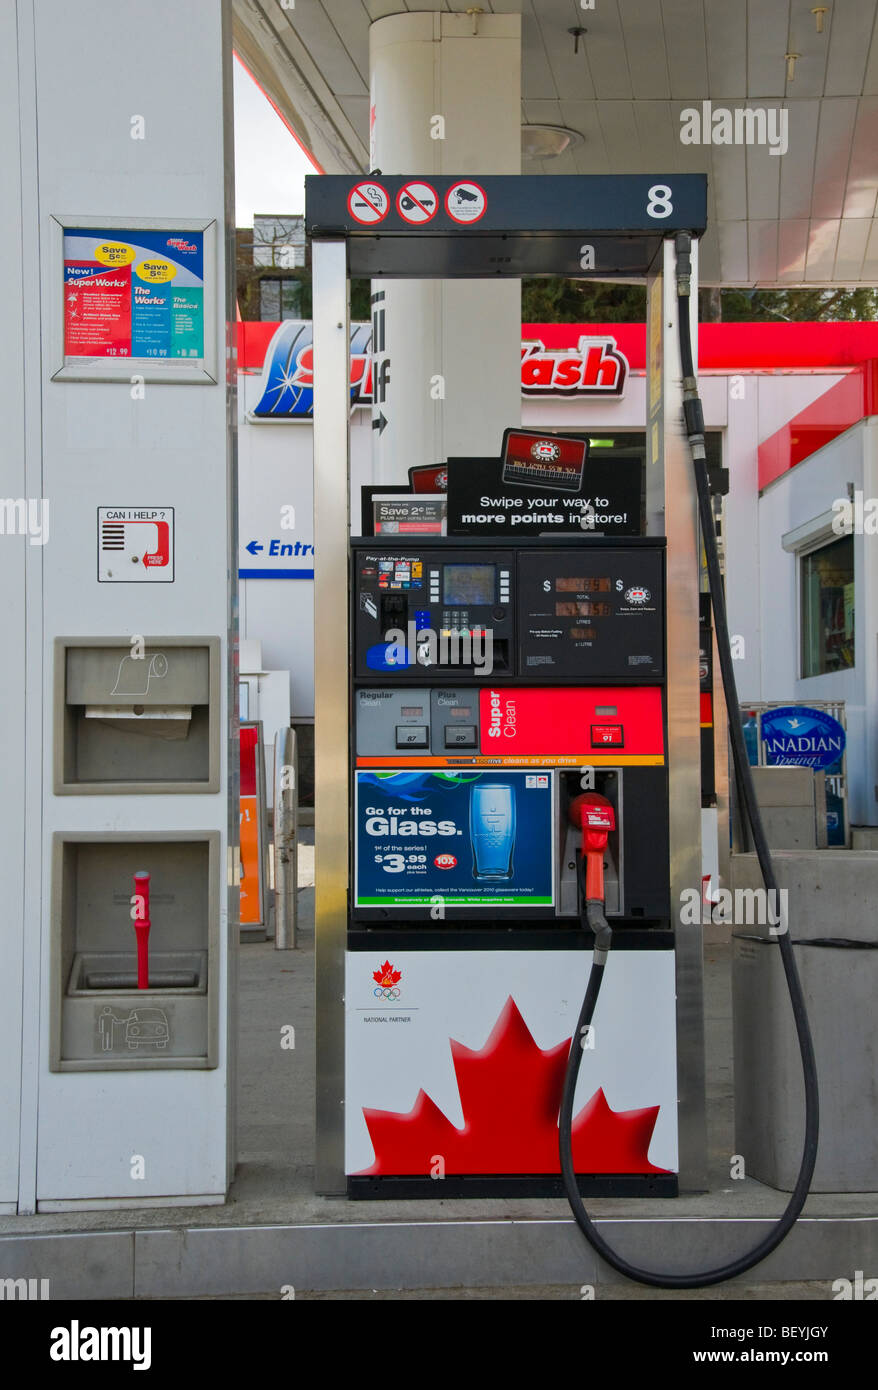 how to buy gas station in canada